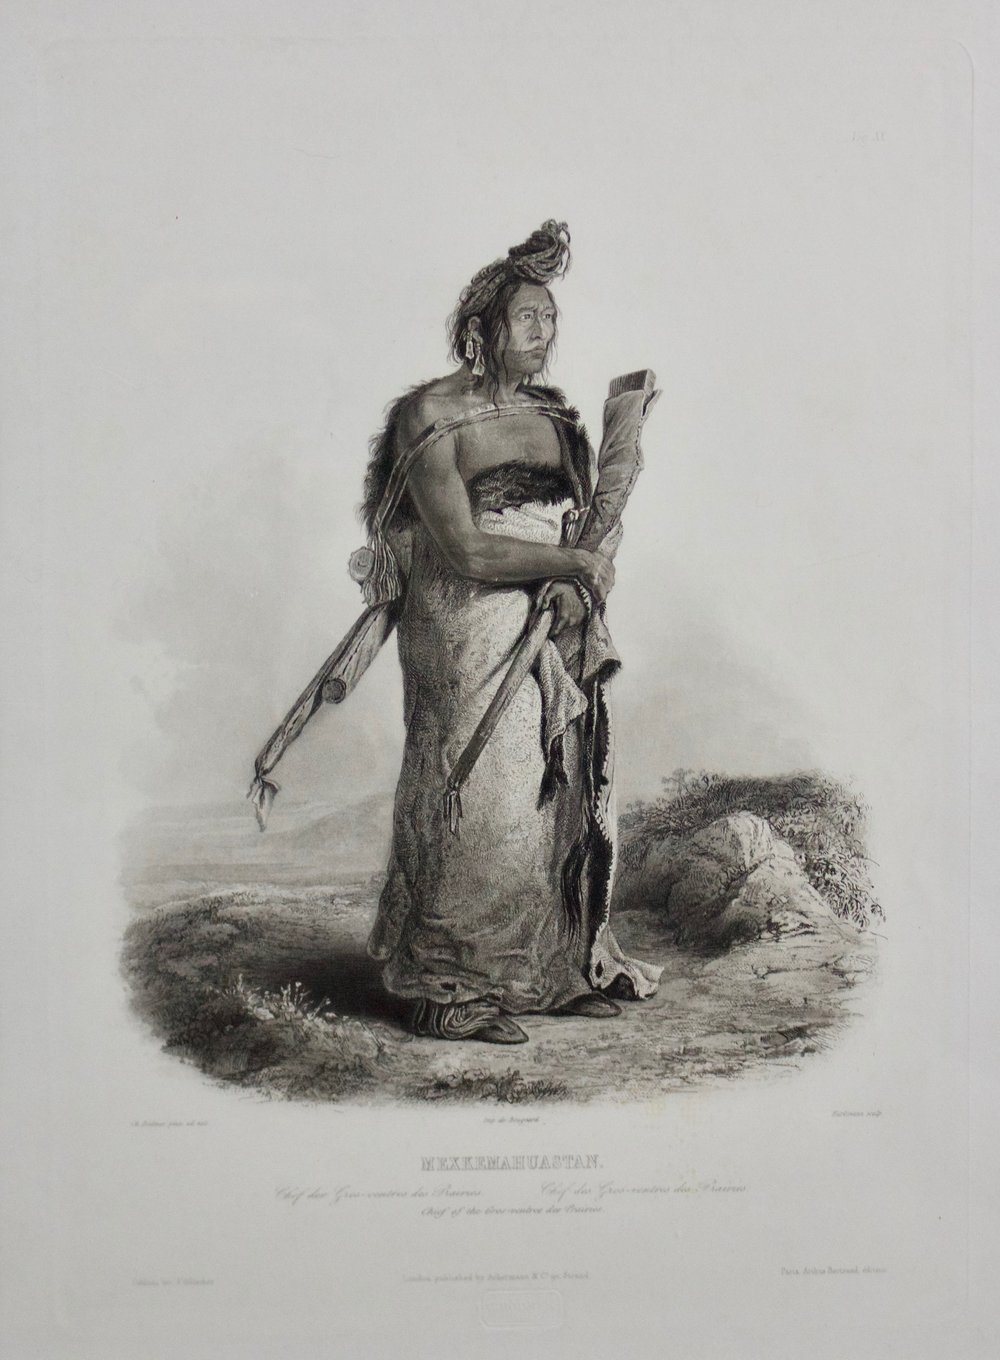 "Karl Bodmer    Chief of the Gros Ventre des Prairies: Mexkemahuastan , 1839  Aquatint, Etching, Roulette and Engraving  Vingette XX  1st State  21.25"" x 17.75""  BV0813"